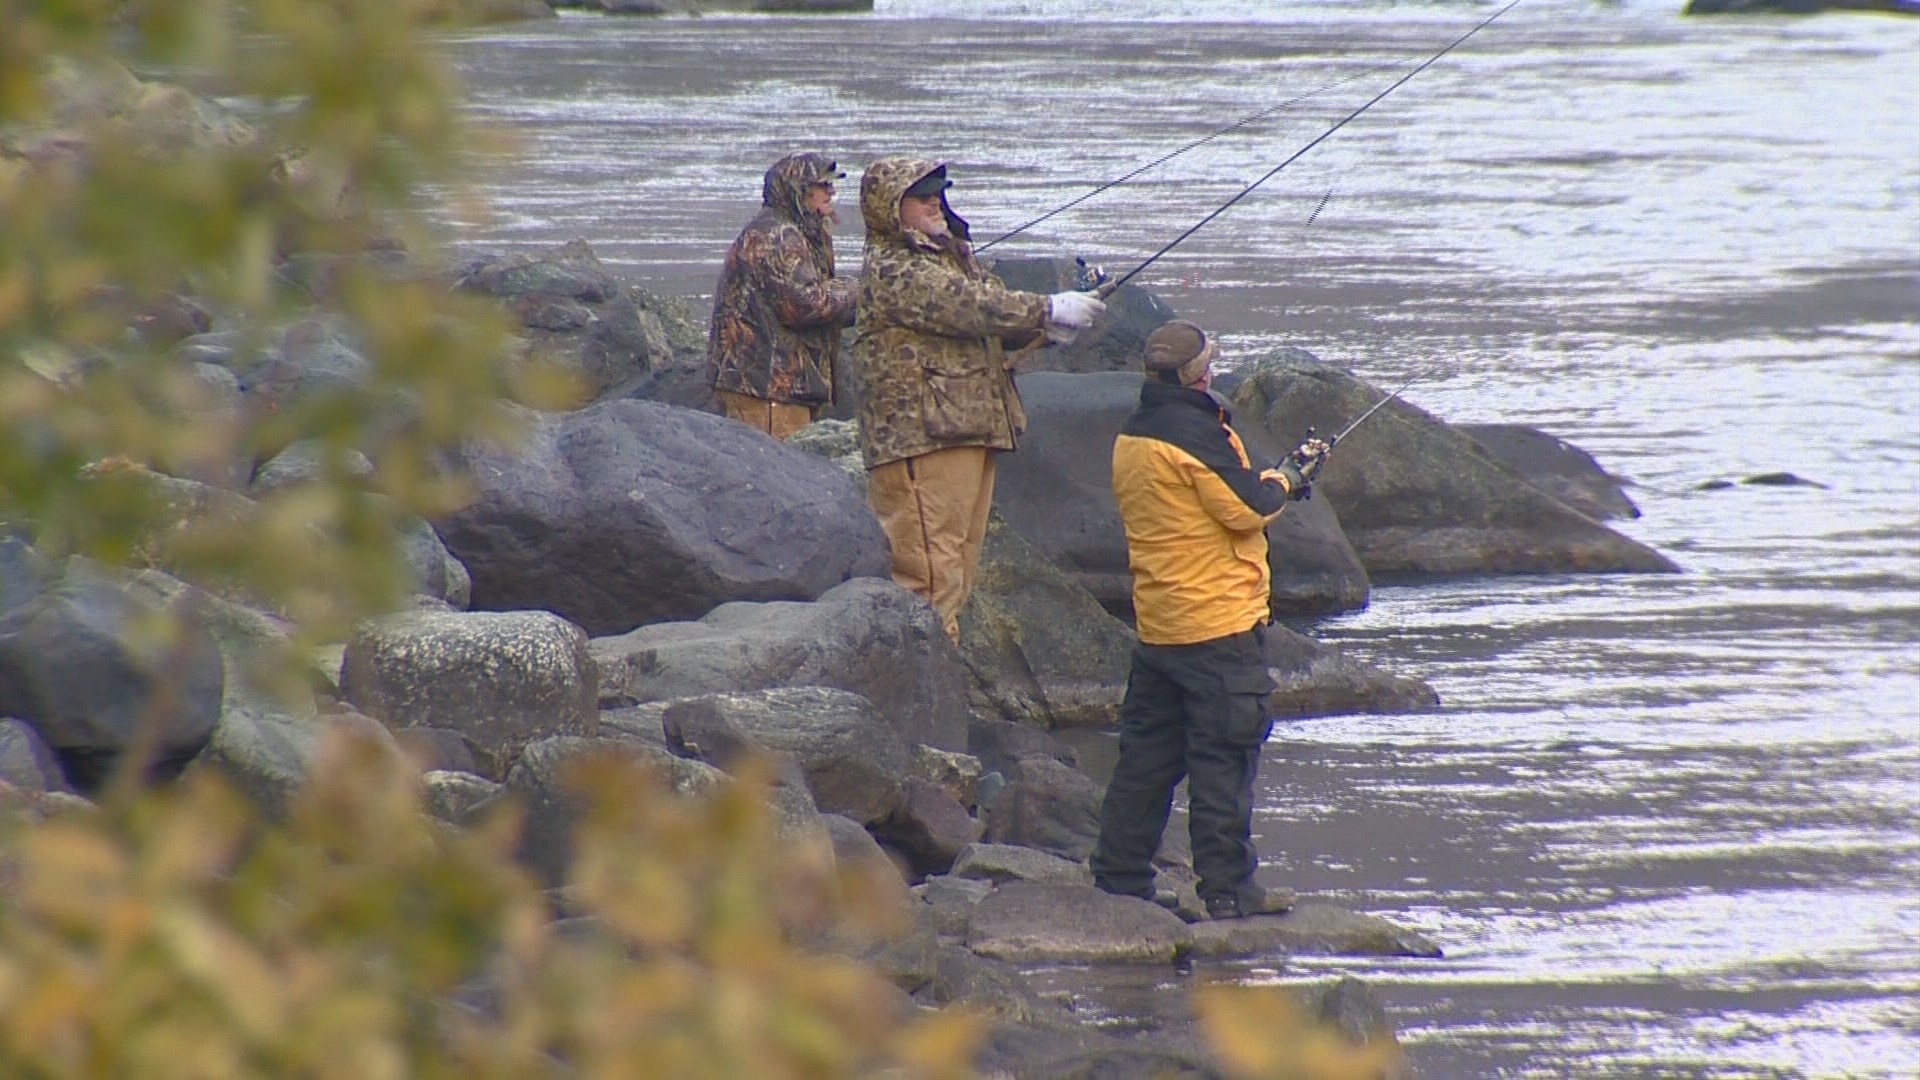 Possible increases for fish and game licenses ktvb com for Fish and game licence